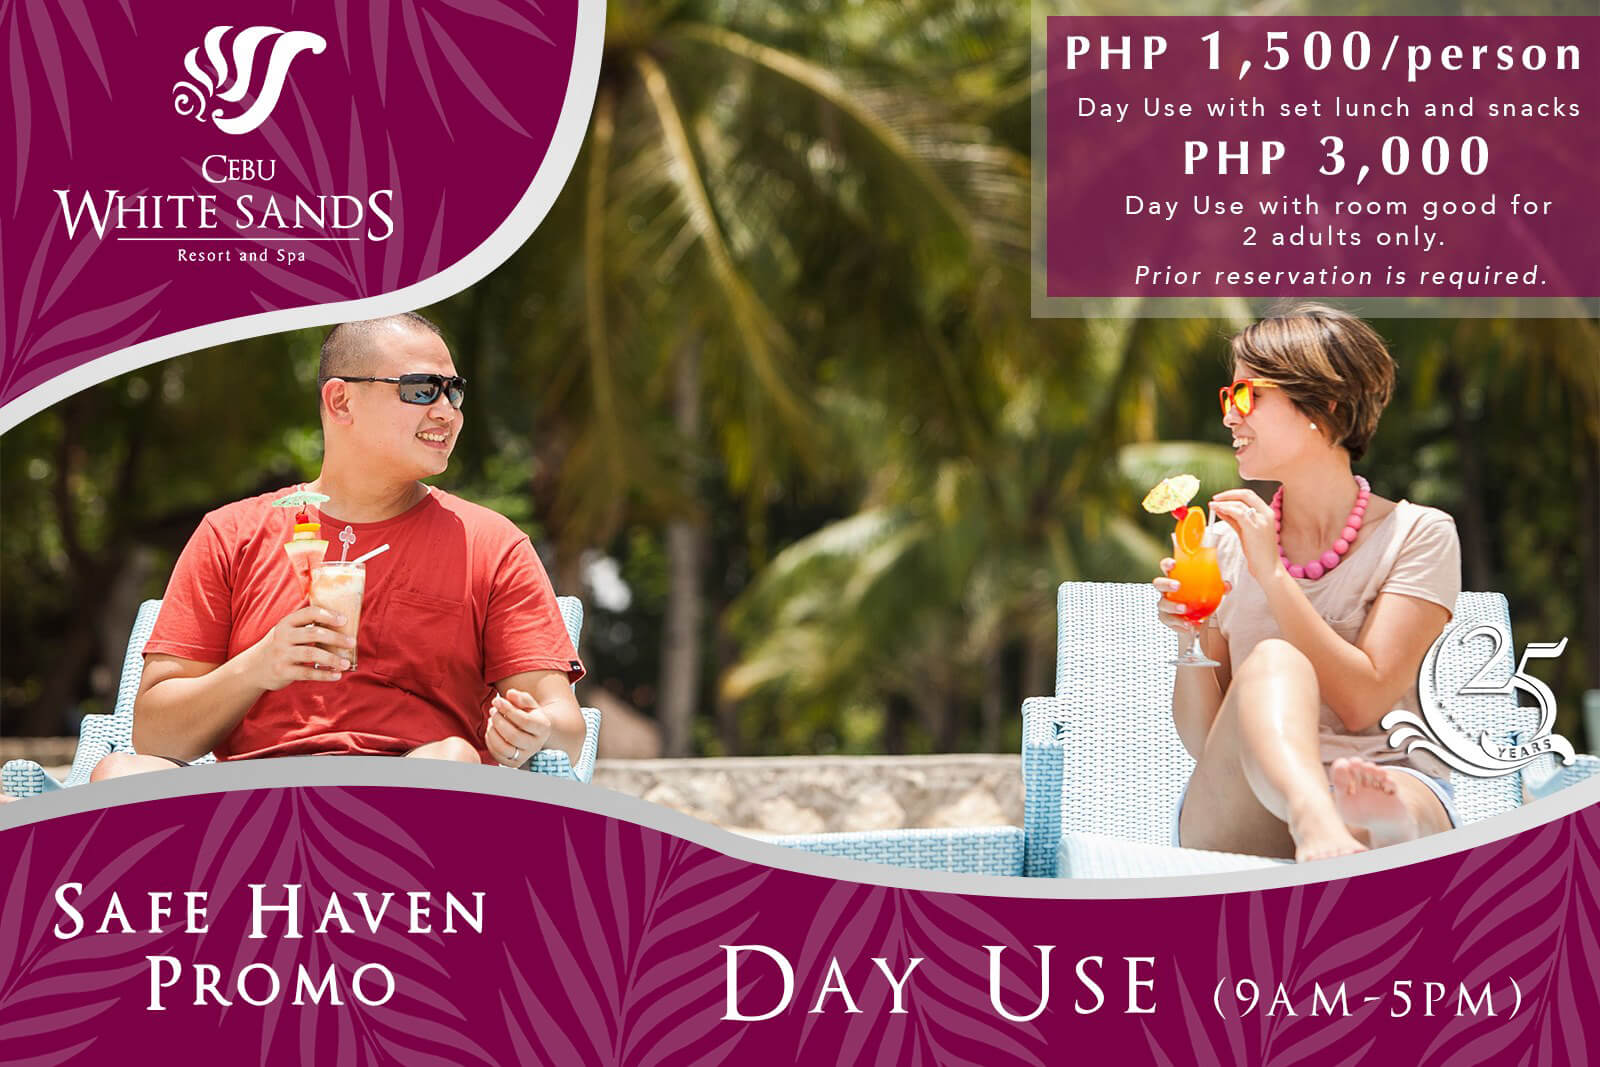 Cebu White Sands Resort and Spa offers overnight stay, day use promos